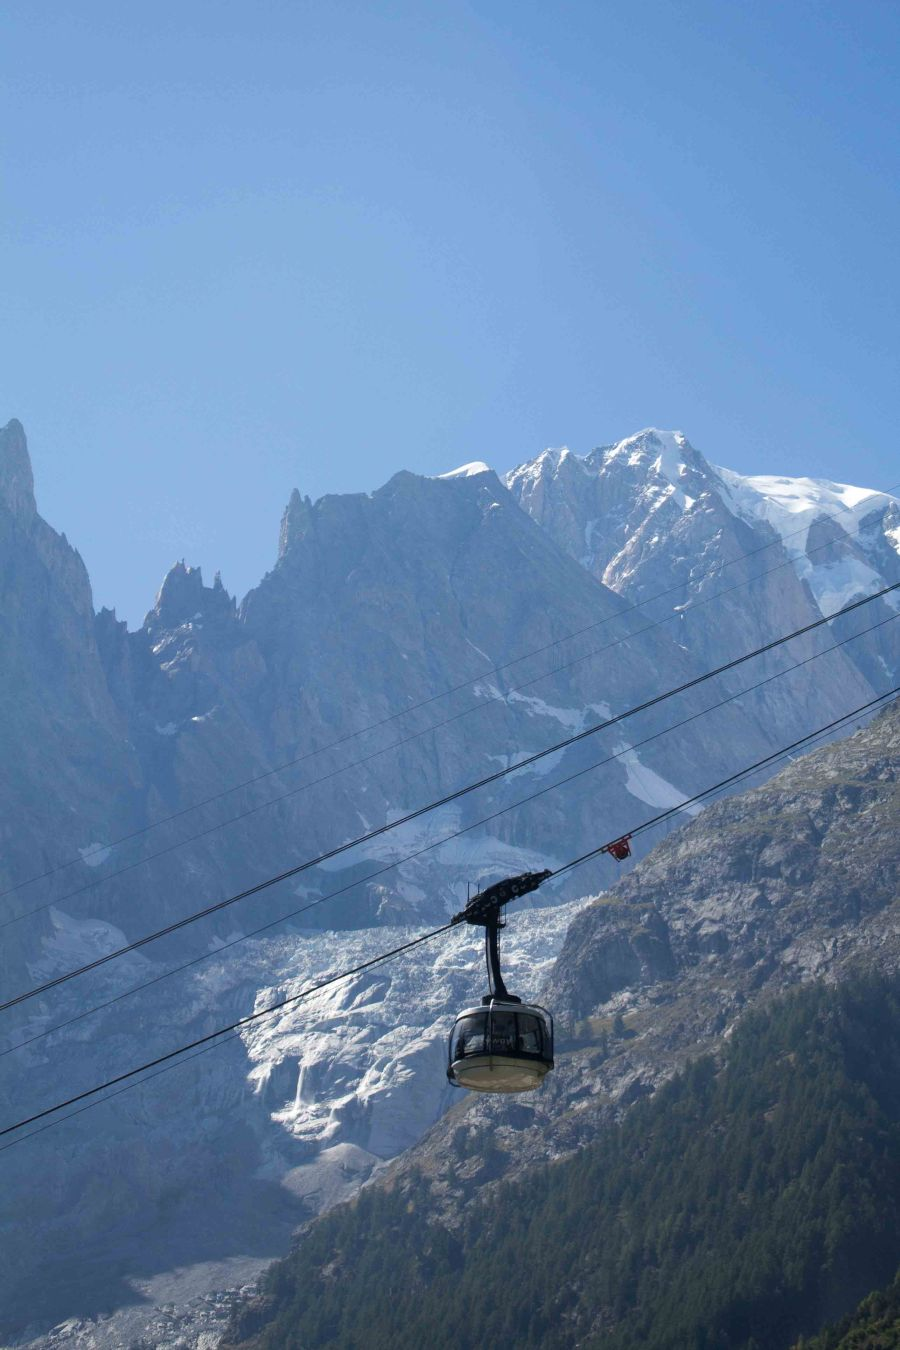 Paragliding in the Alps is the BEST thing to do in Chamonix!